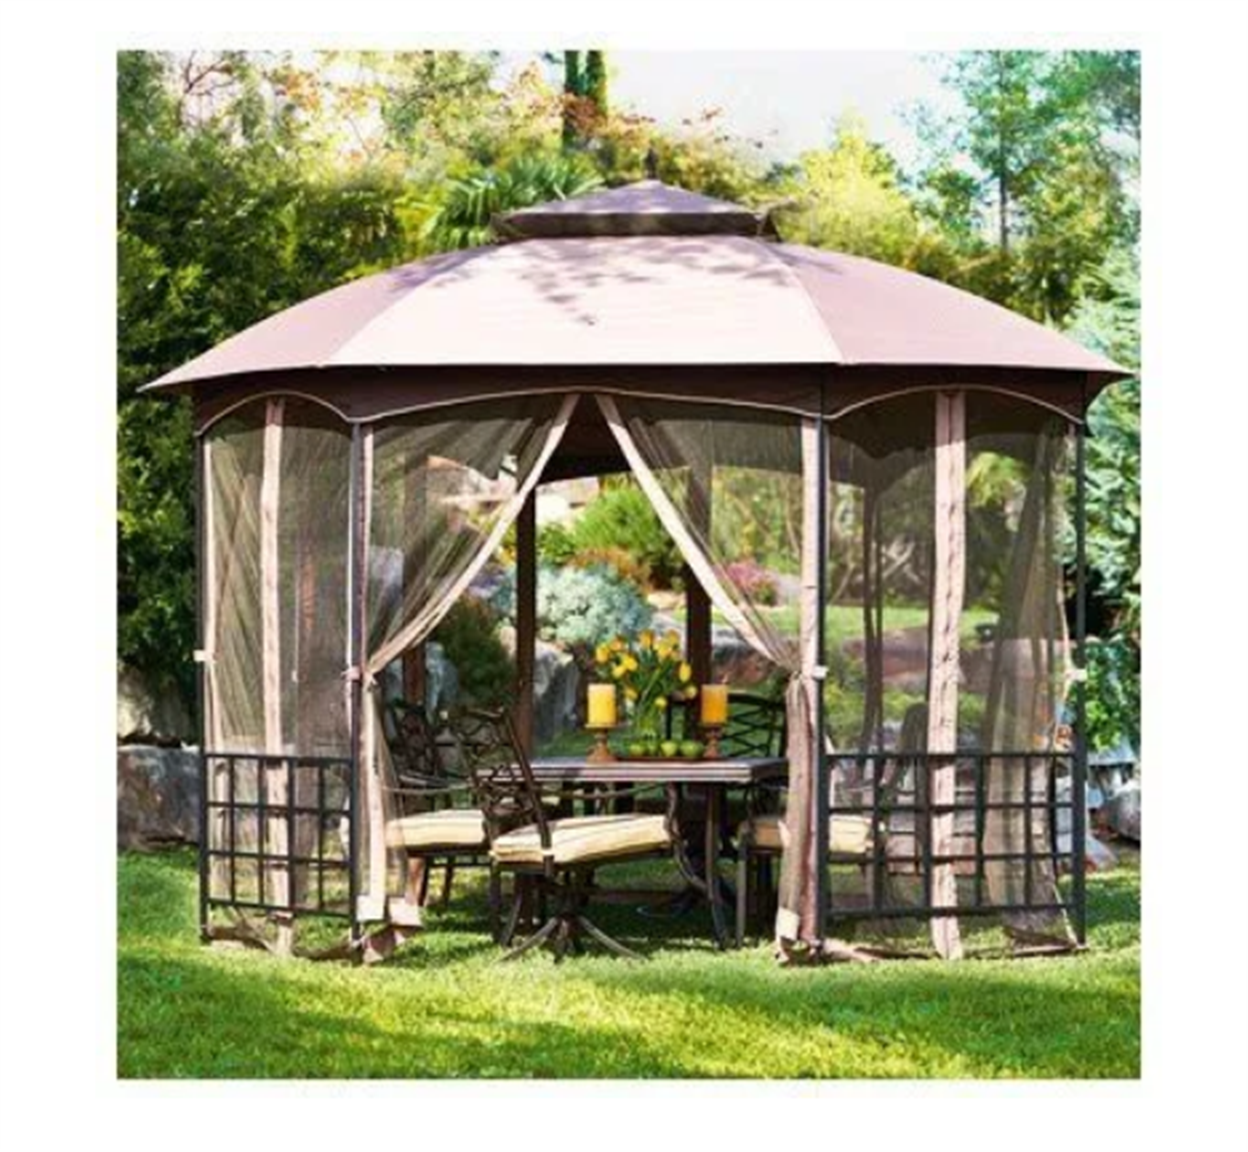 Catalina Gazebo With Canopy & Netting, Octogon Shape, 12 x 9.8 x 9.4-Ft. Only $159.99, Reg $349.00 + Free Store Pickup!